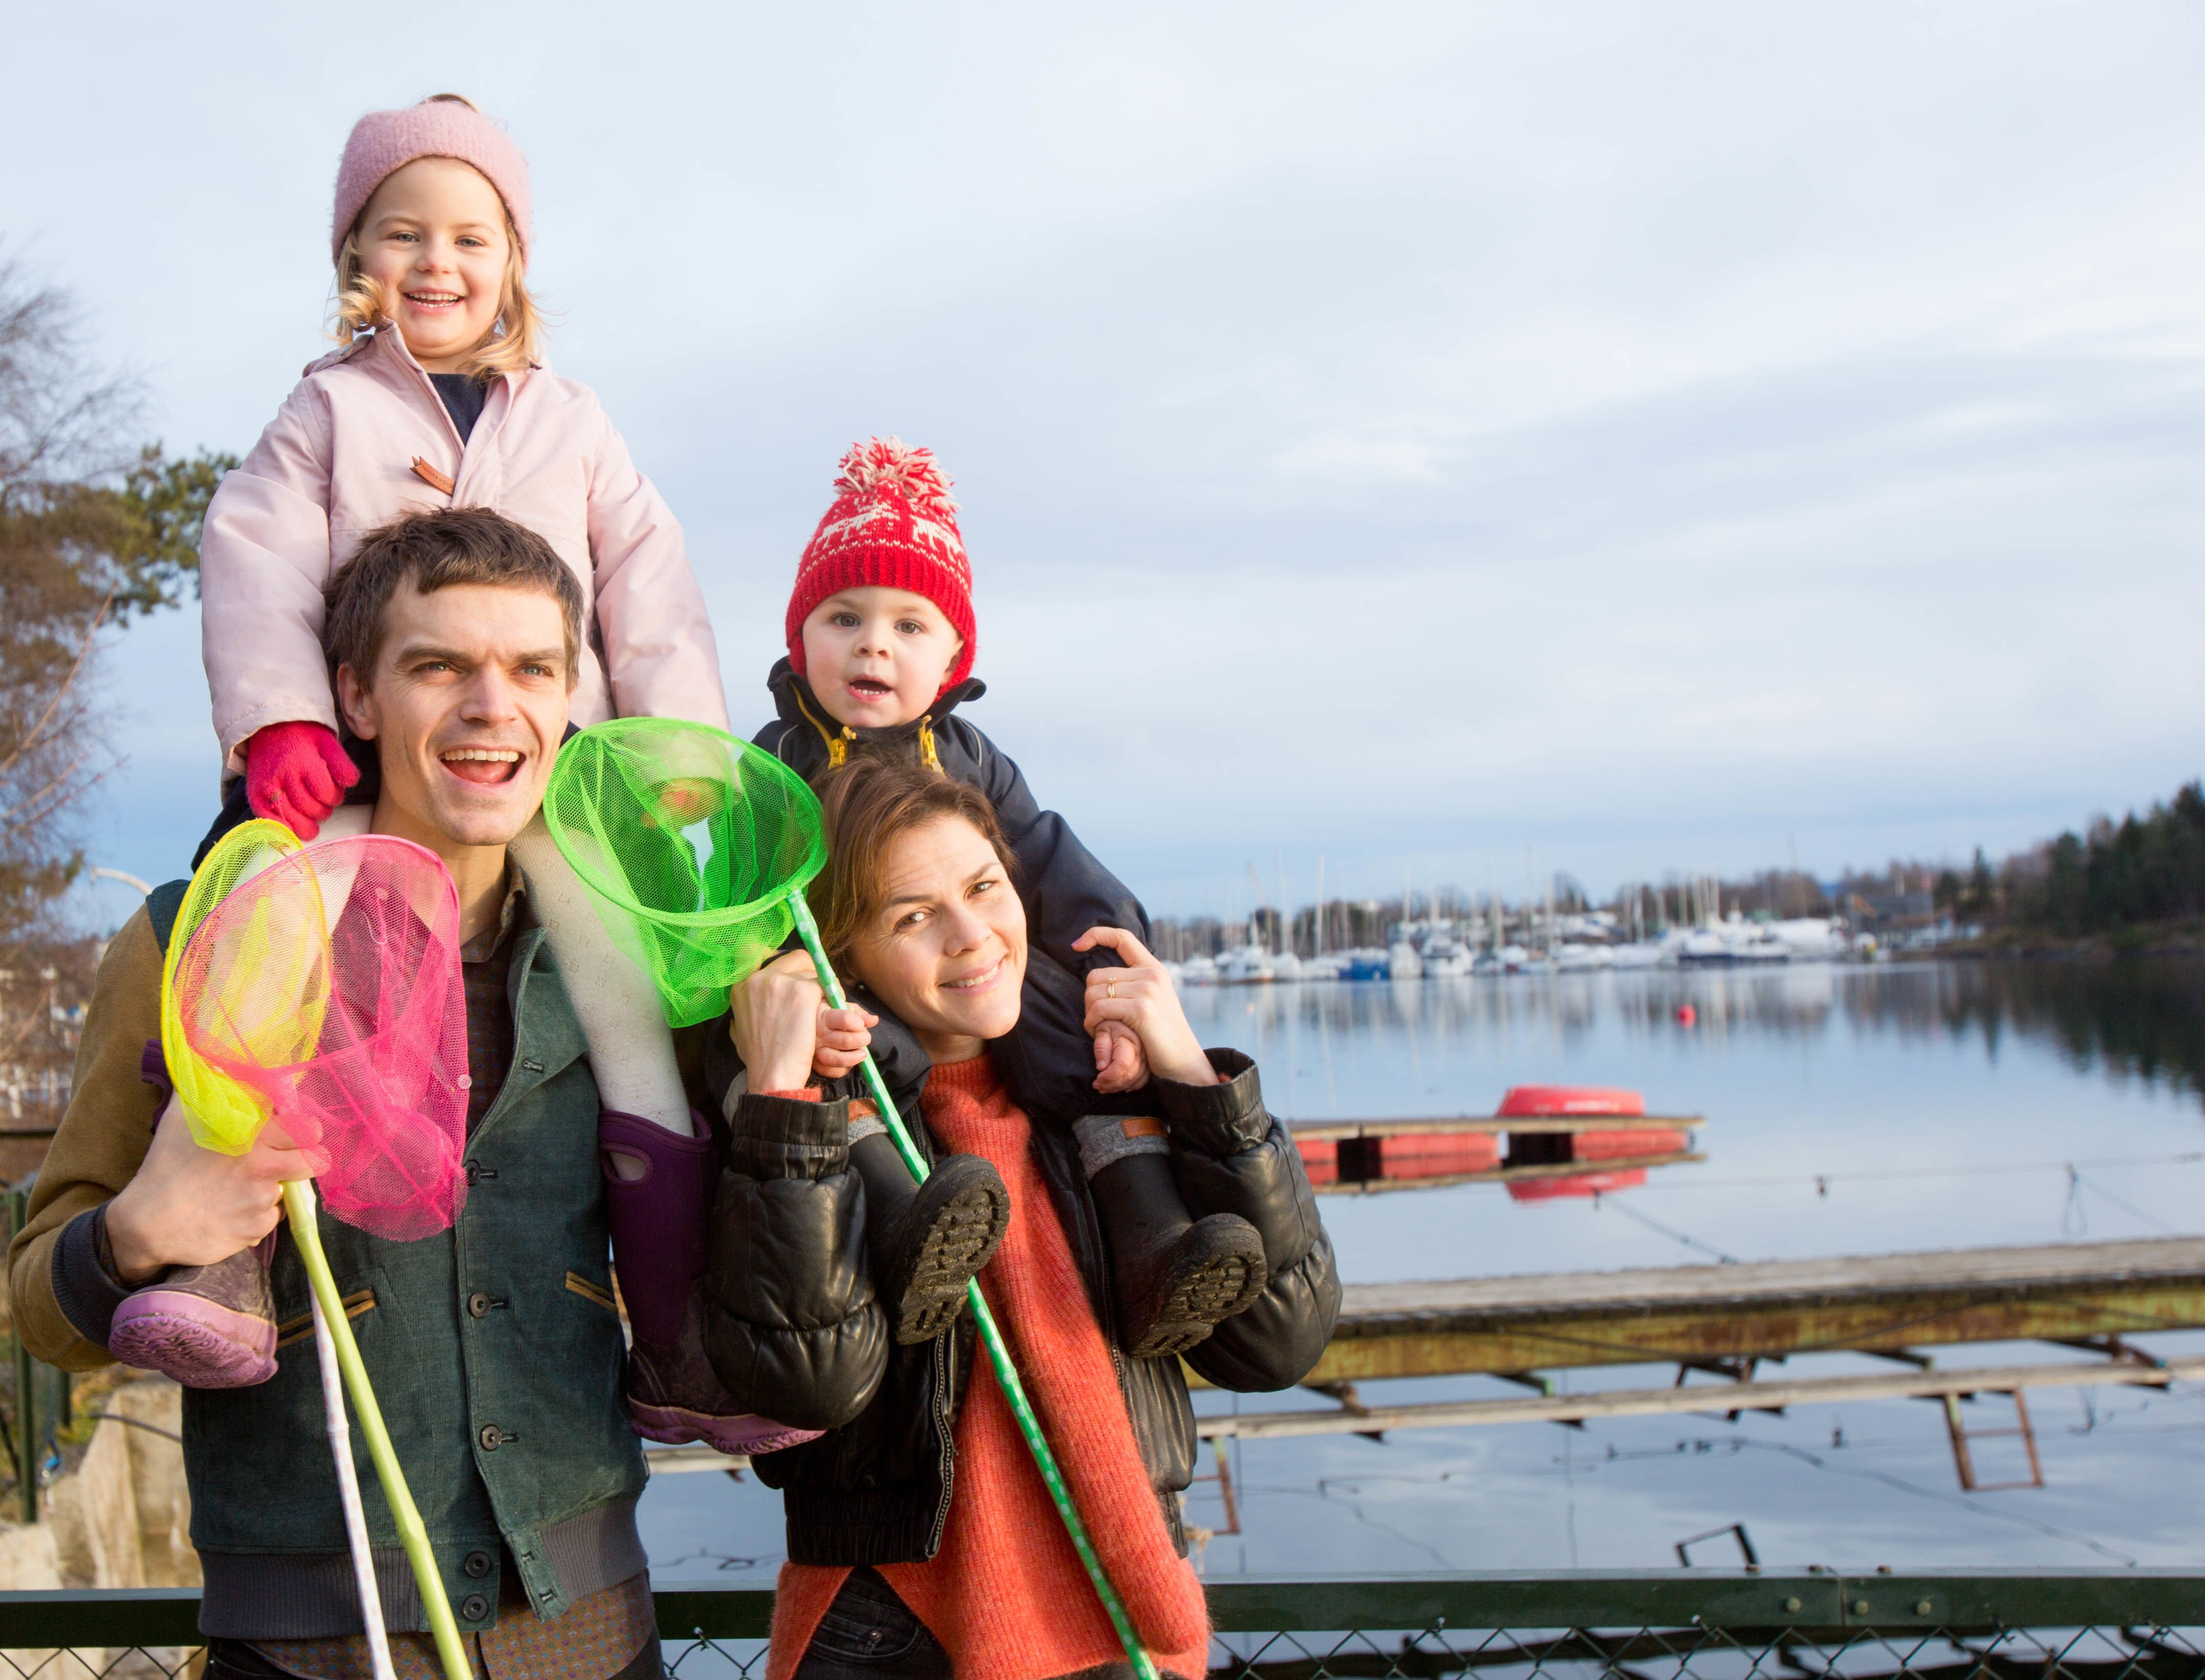 Simon and Julie Irgens withtwo of their children in Oslo, Norway. They have benefited from generous government parental